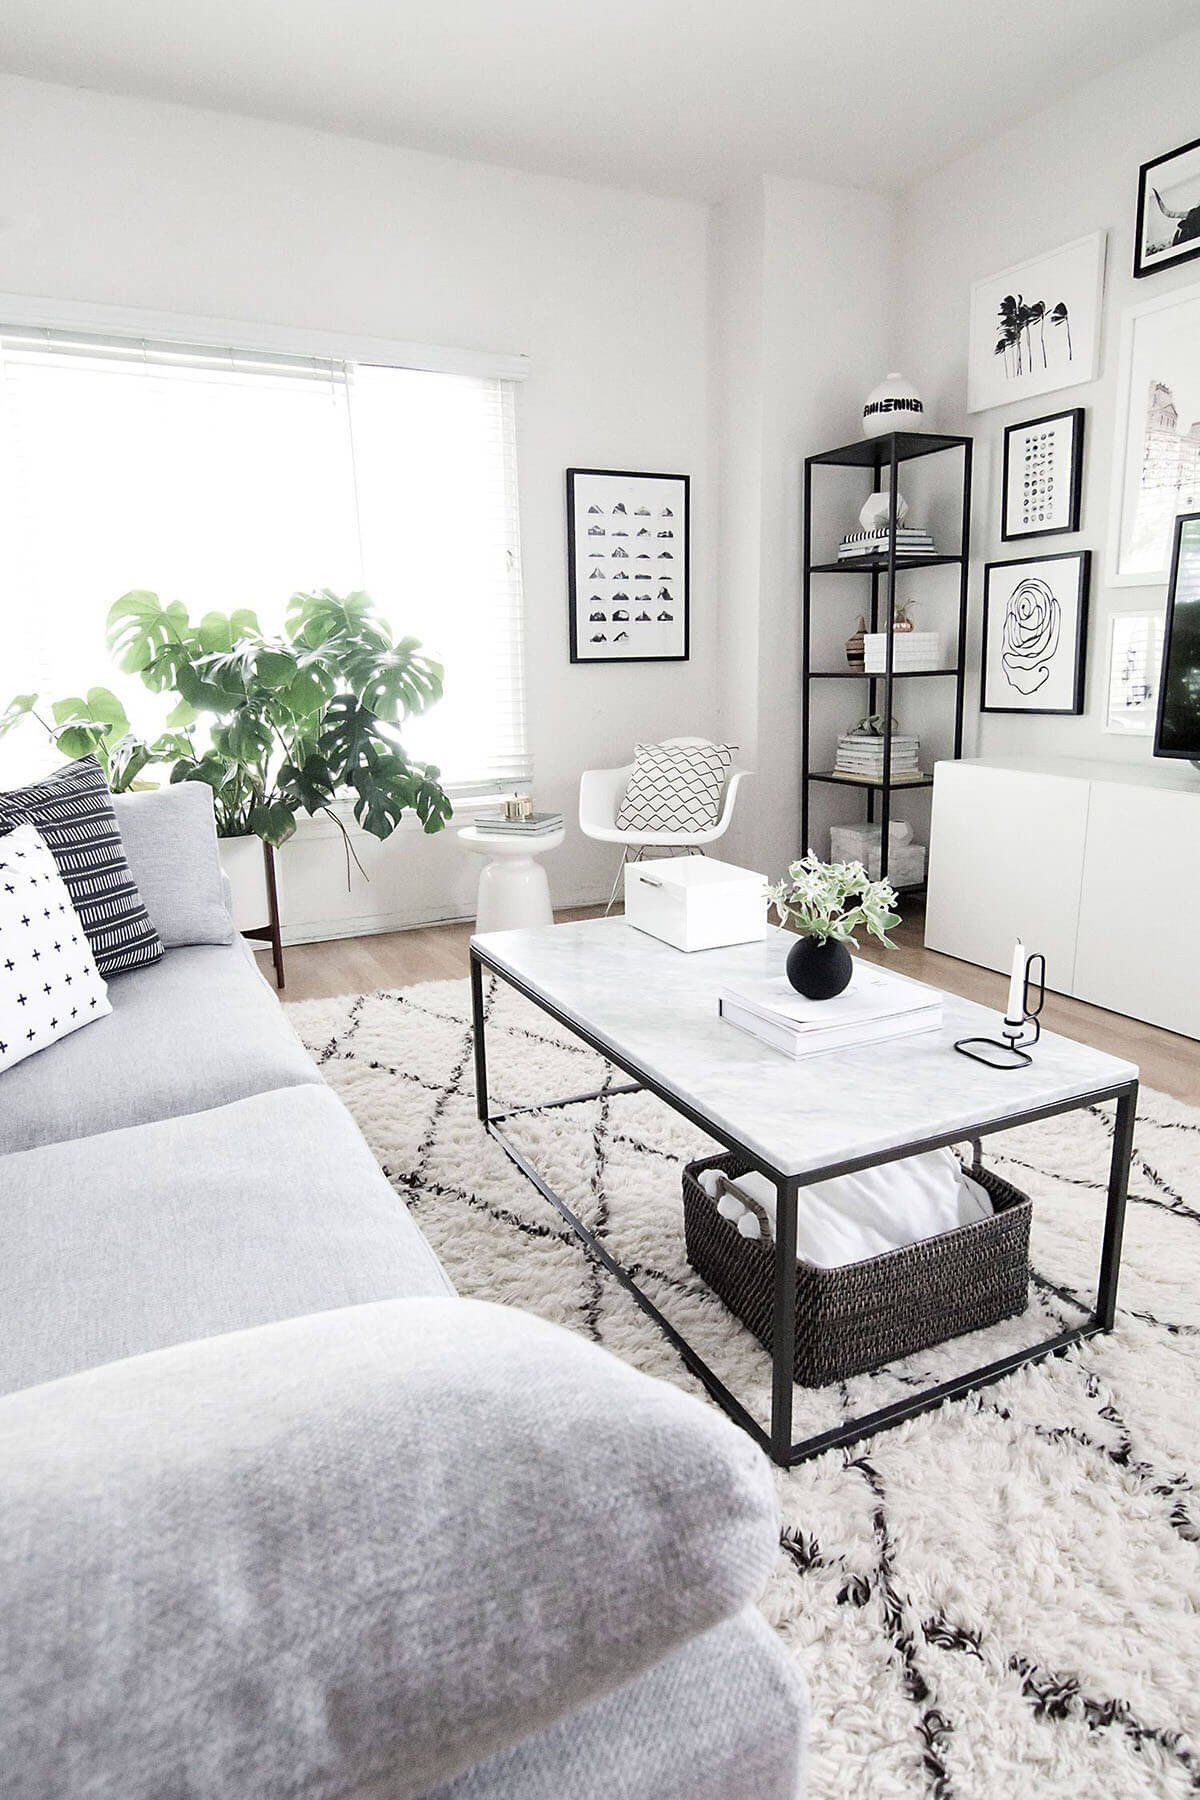 Pin by Virginia Rempel on My Saves in 2020 | Flat decor